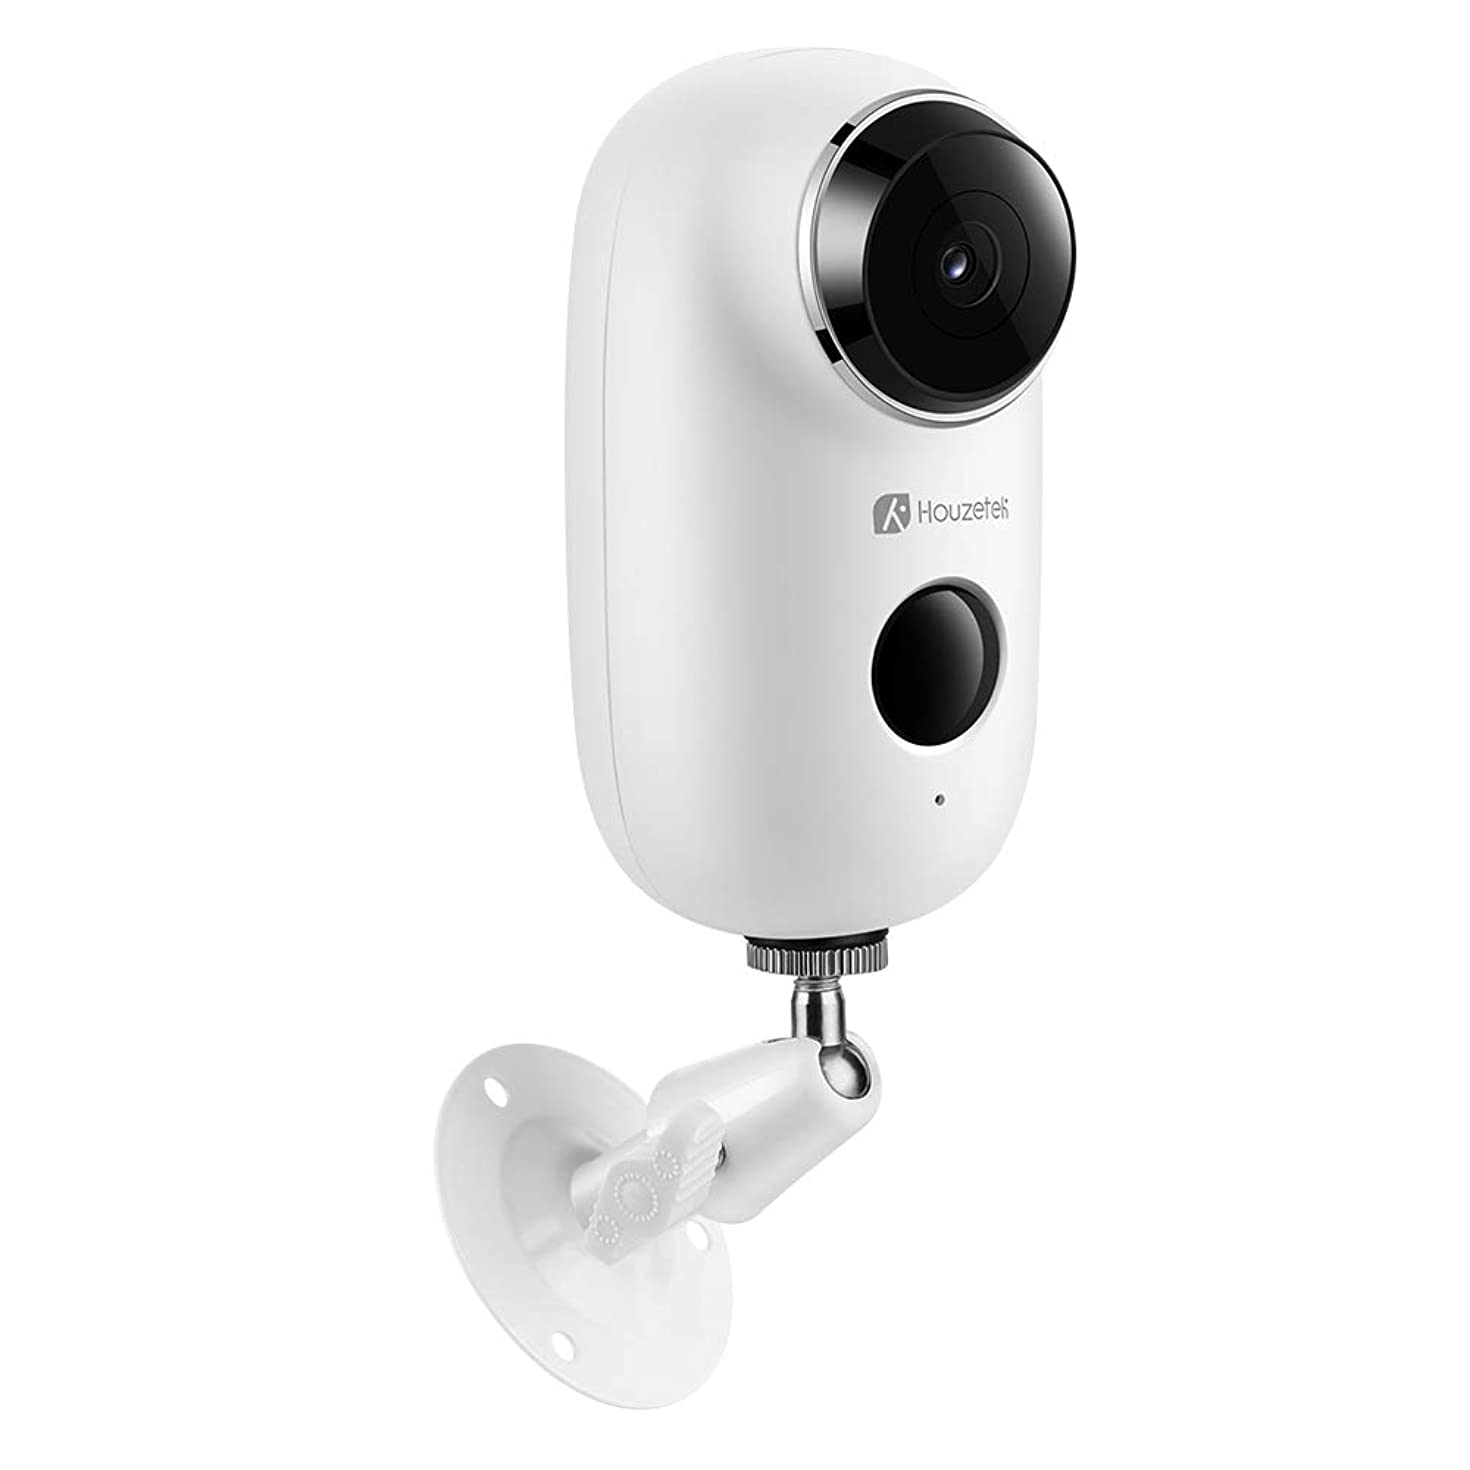 Wireless IP Camera, Houzetek 720P Security Camera WiFi Home Indoor Surveillance System with Night Vision, Two-Way Audio, Motion Detection,for Baby/Pet/Nanny, Support iOS/Android SD/TF Card